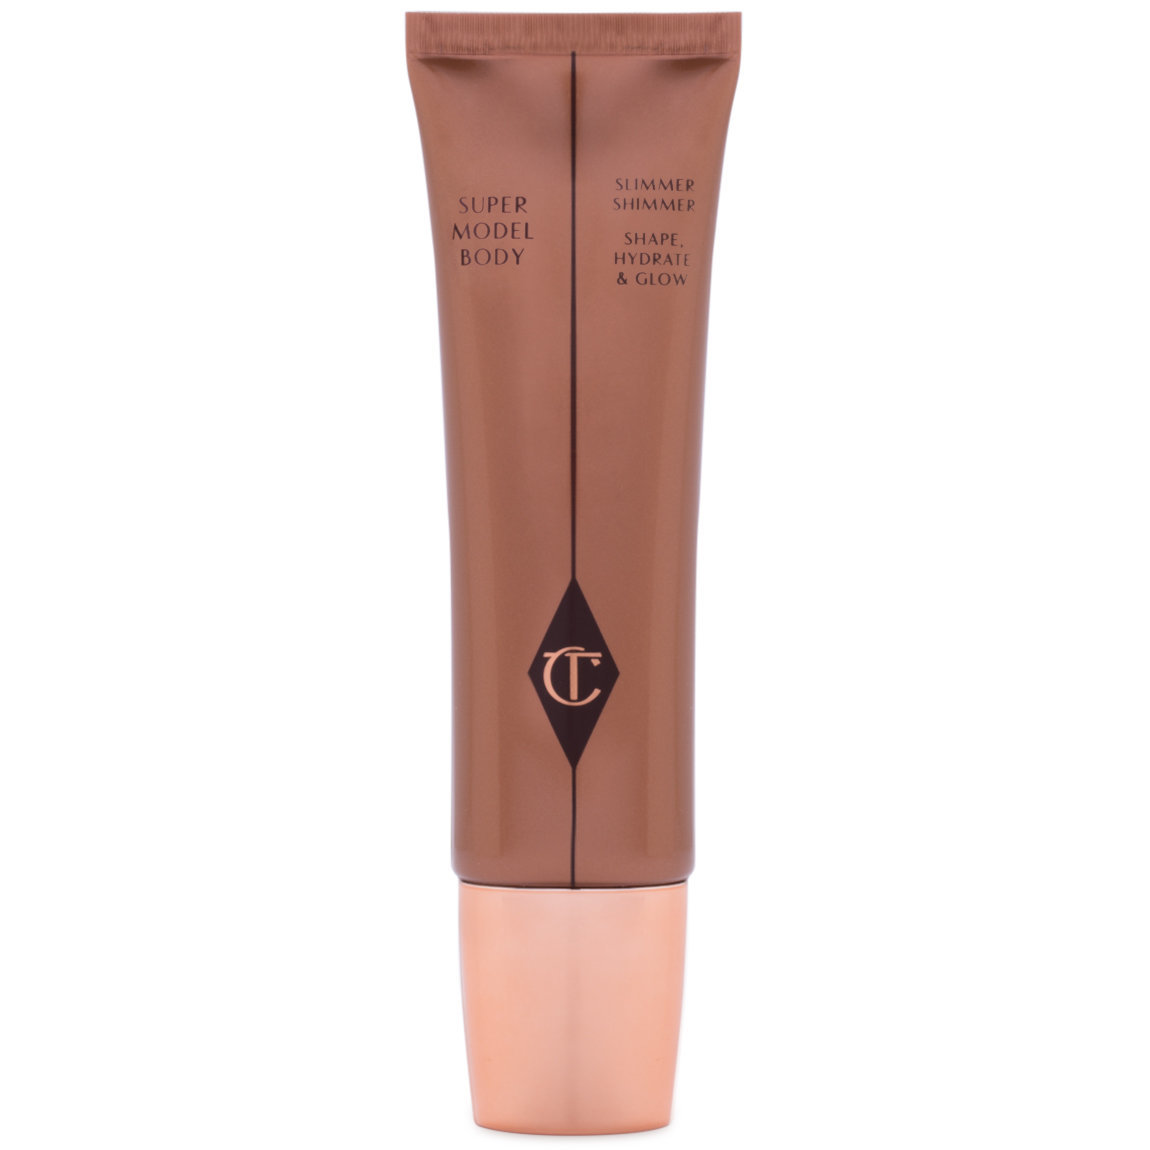 Charlotte Tilbury Supermodel Body 60 ml alternative view 1 - product swatch.